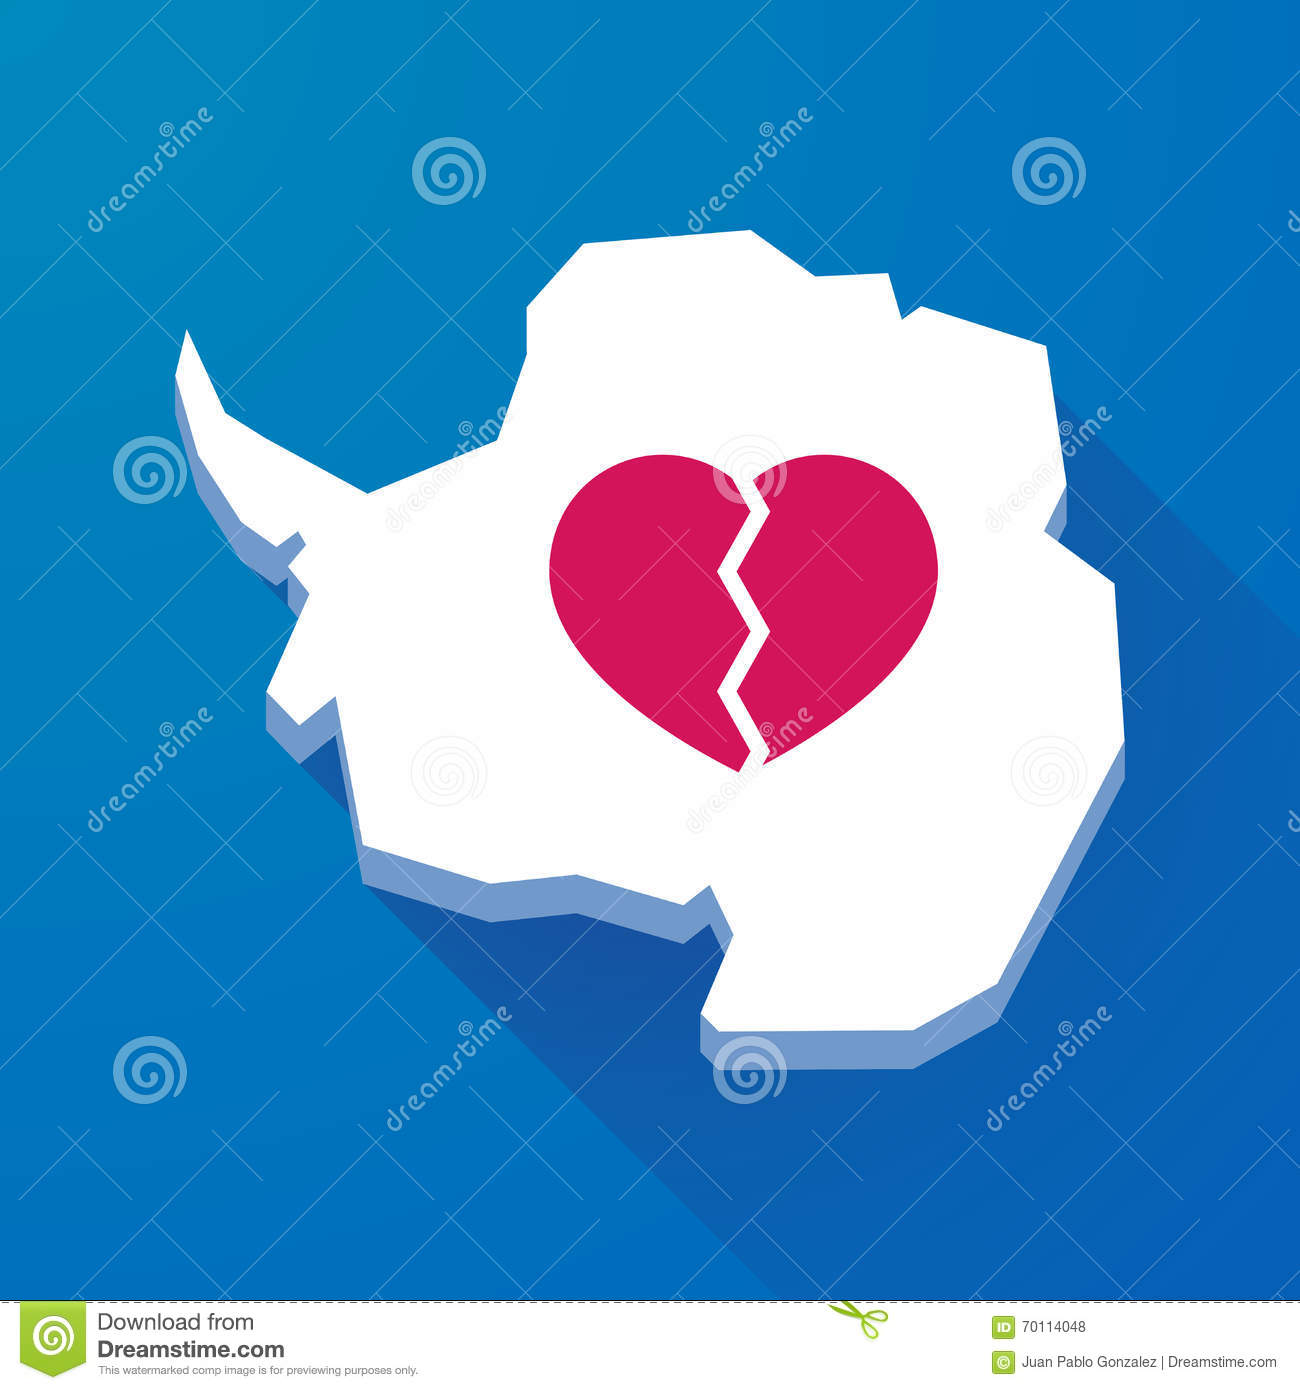 Long shadow map of Antarctica continent with a broken heart